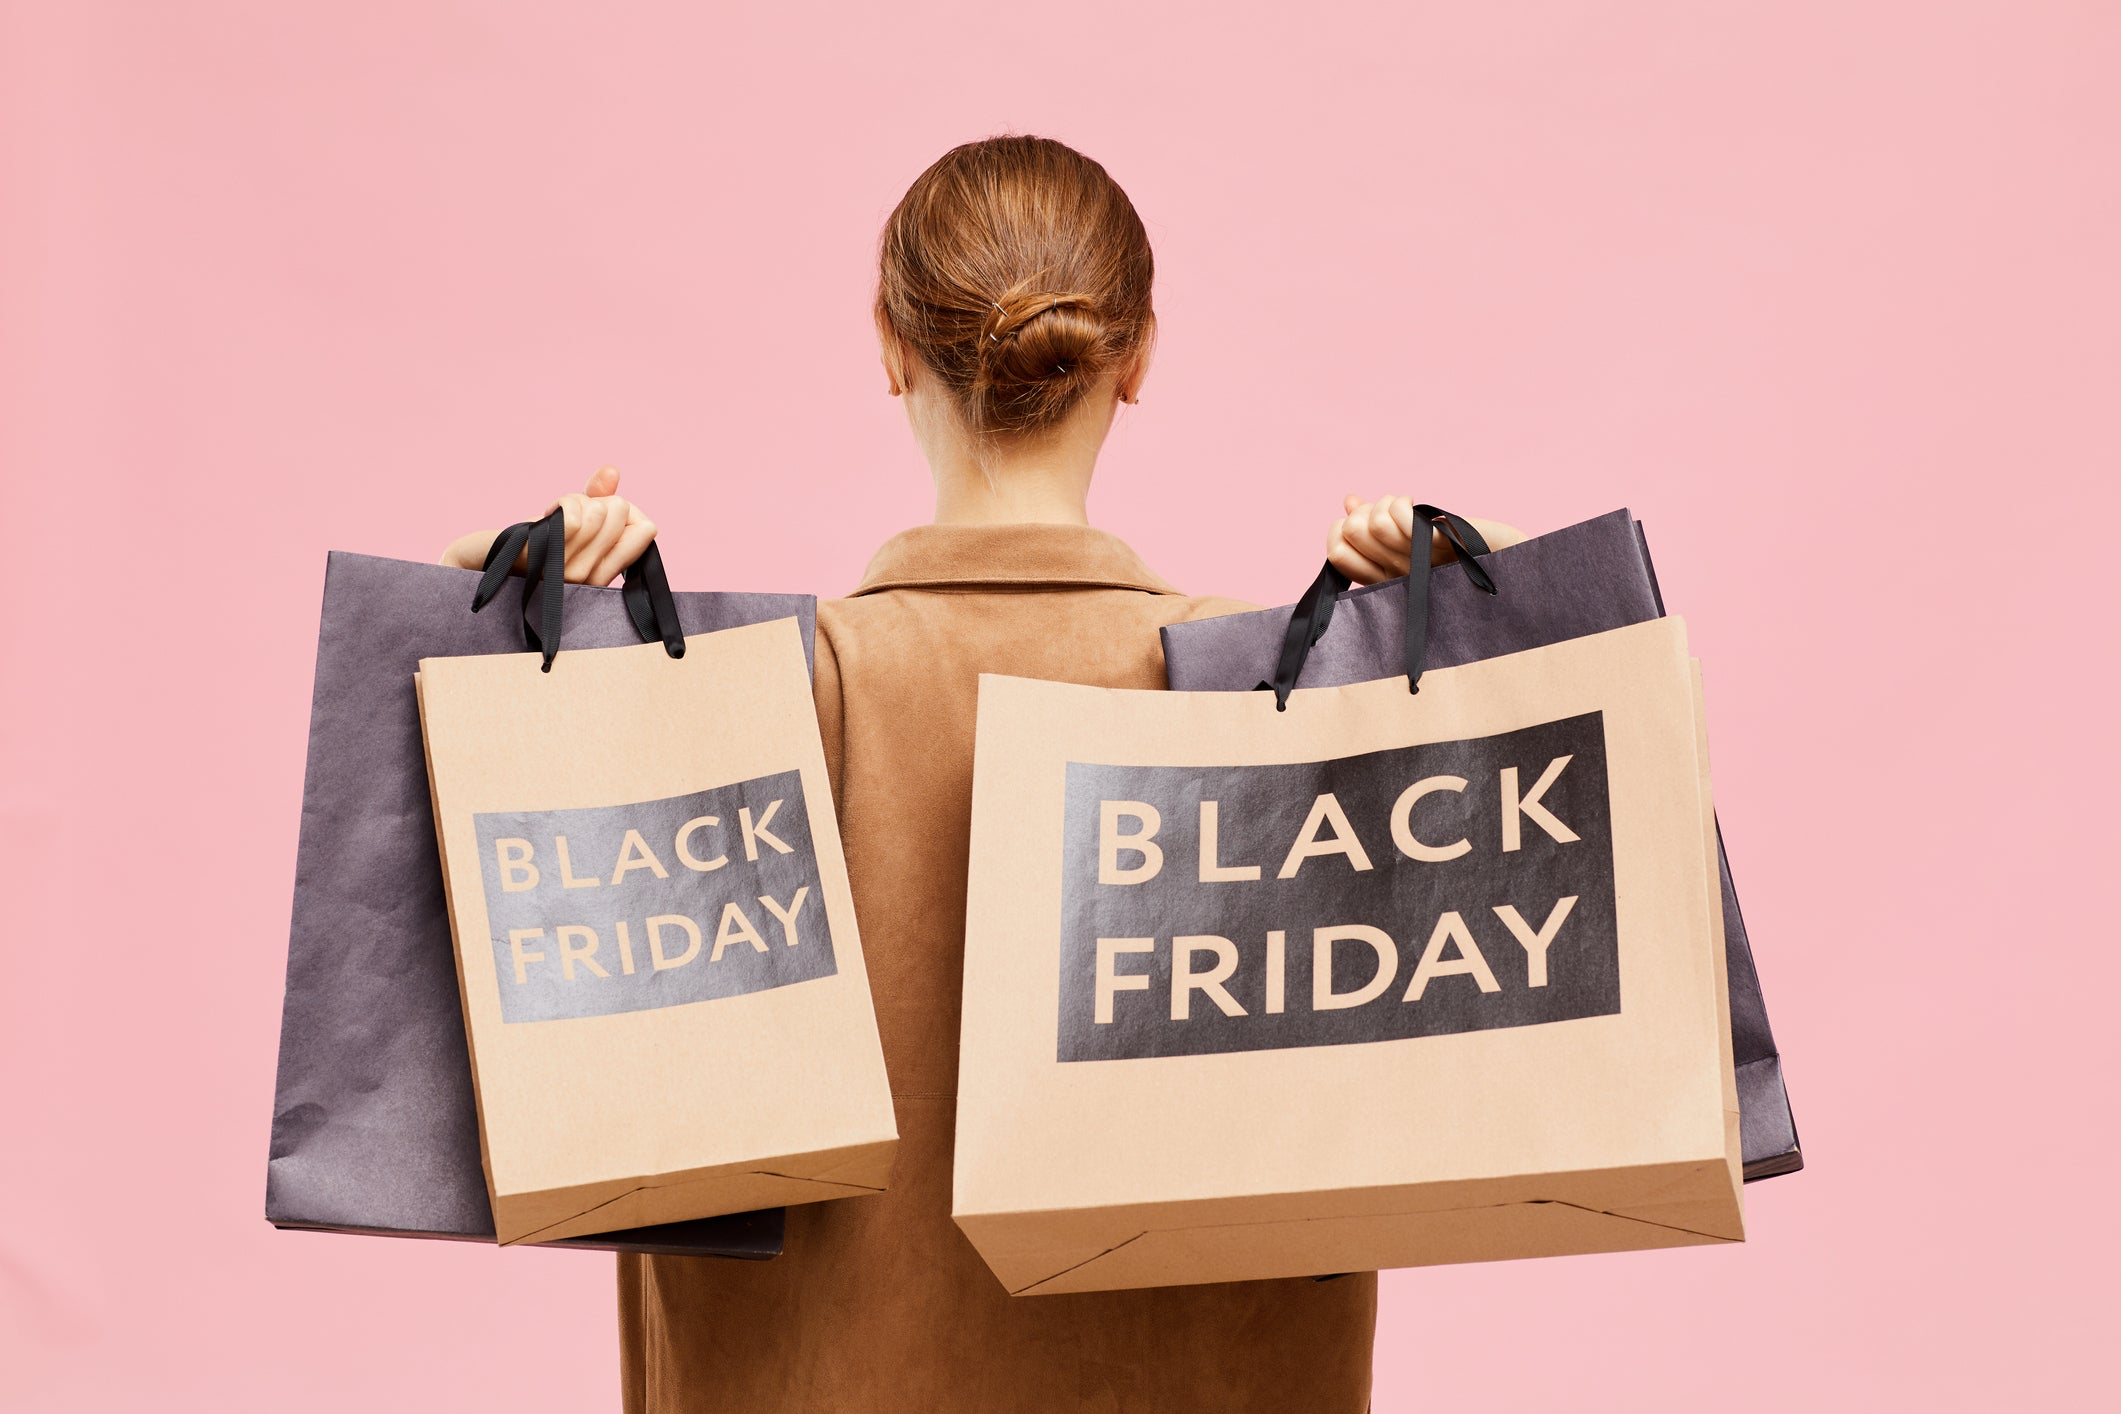 Black Friday 2020 What To Expect On The Biggest Shopping Day Of The Year Indy100